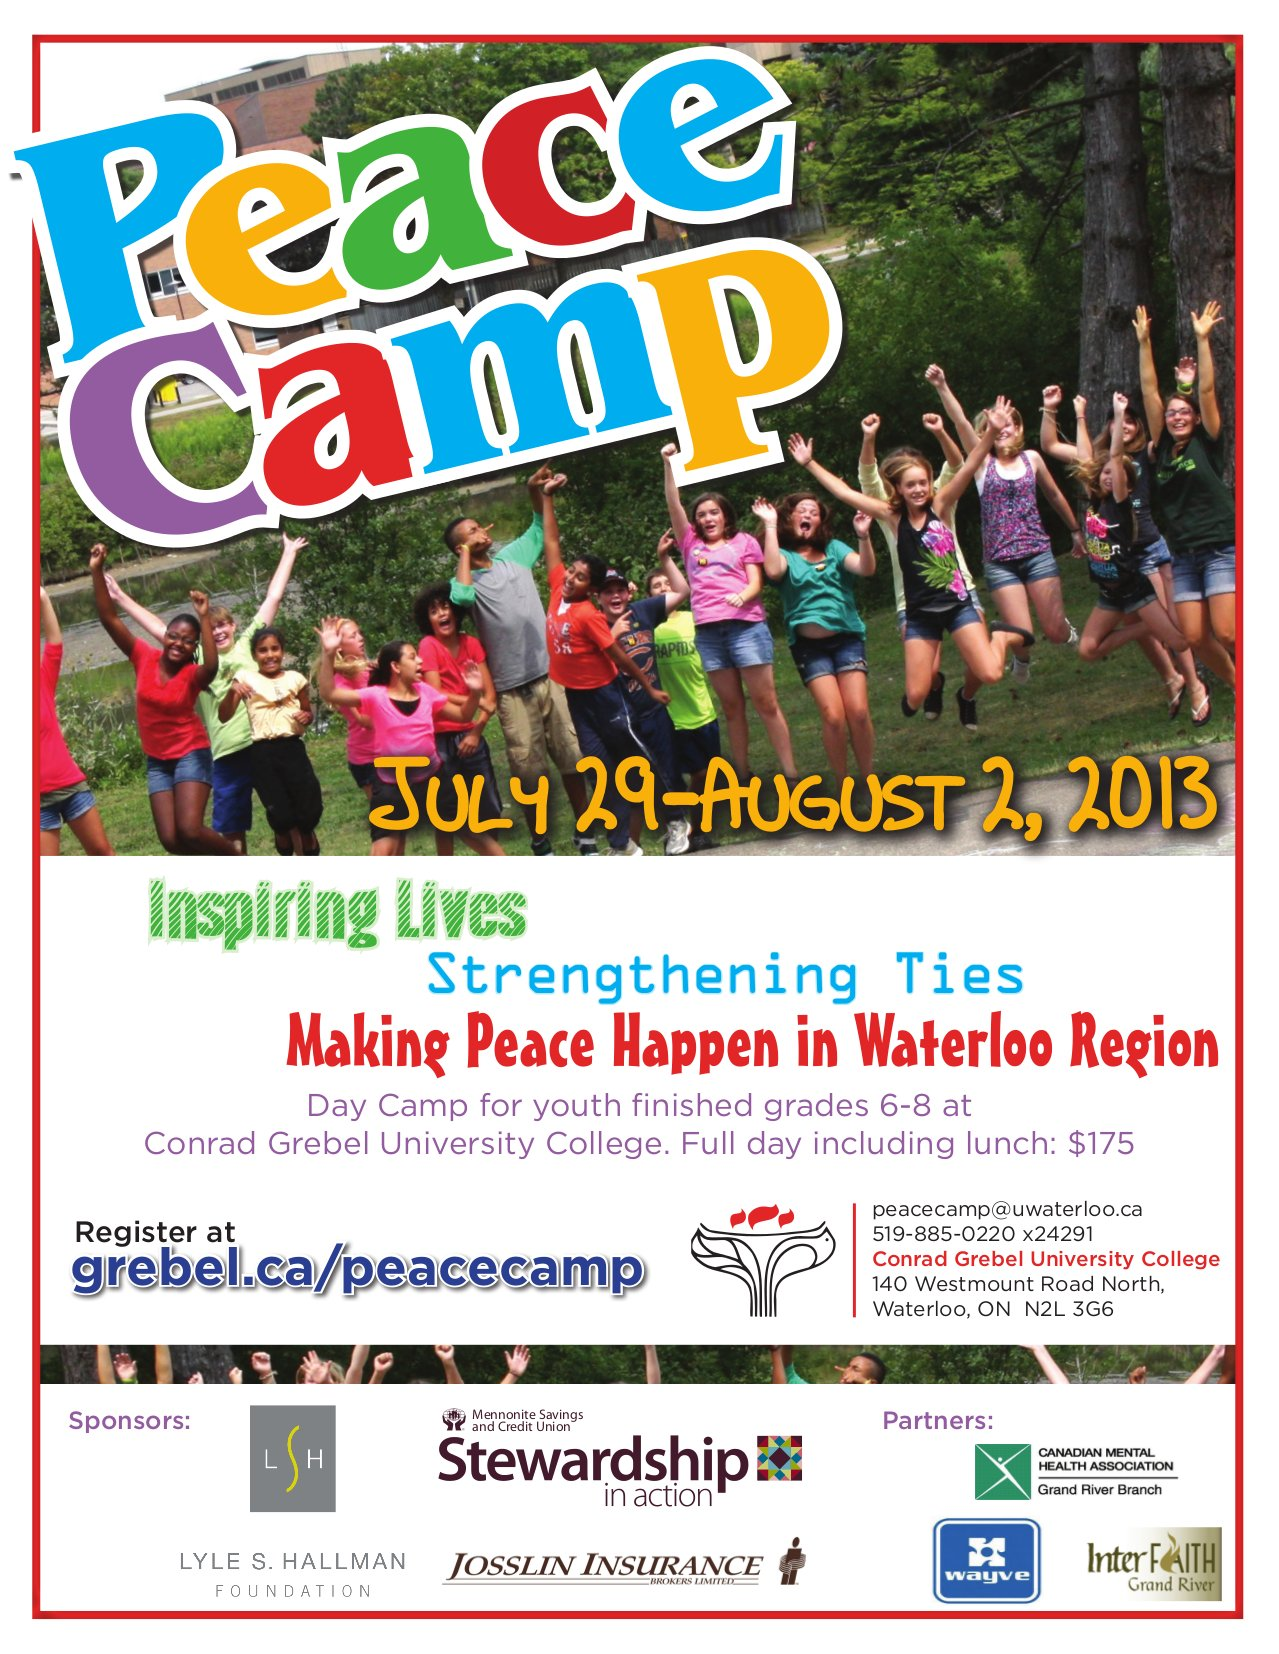 Peace Camp July 29 -- August 2, 2013